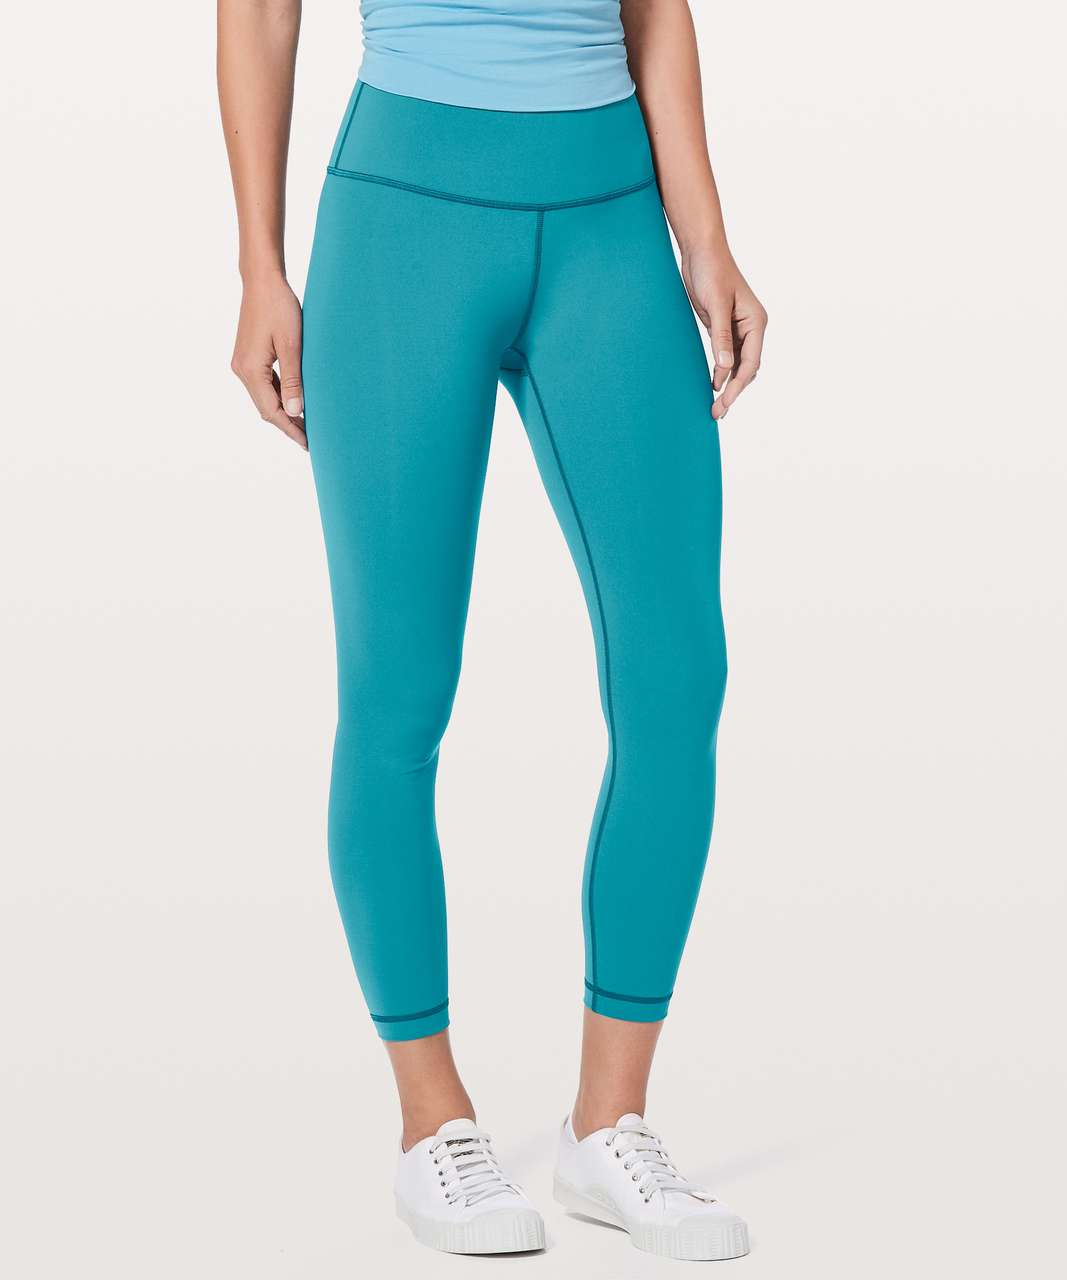 "Lululemon Wunder Under Hi-Rise 7/8 Tight *25"" - Pacific Teal"